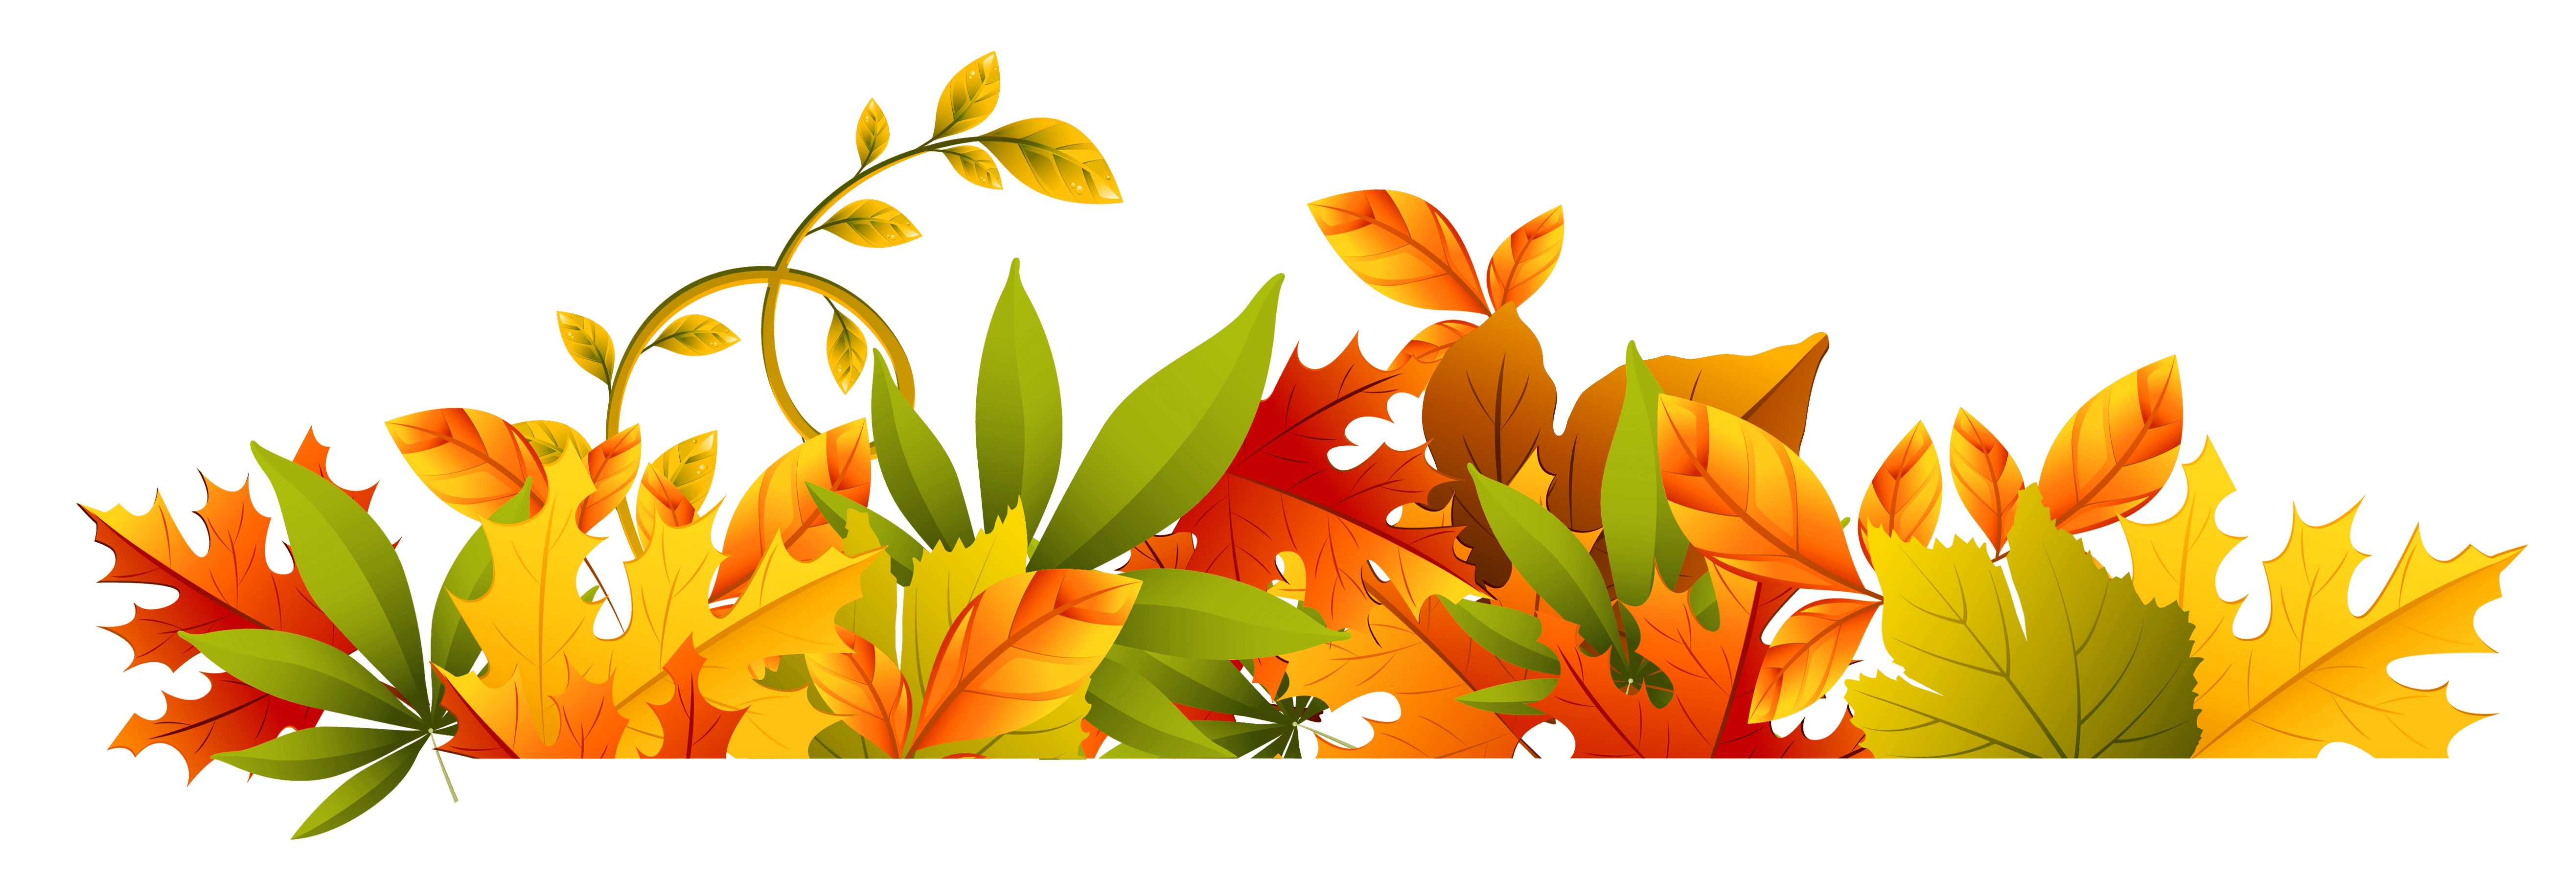 Fall floral png. Flowers border new transparent